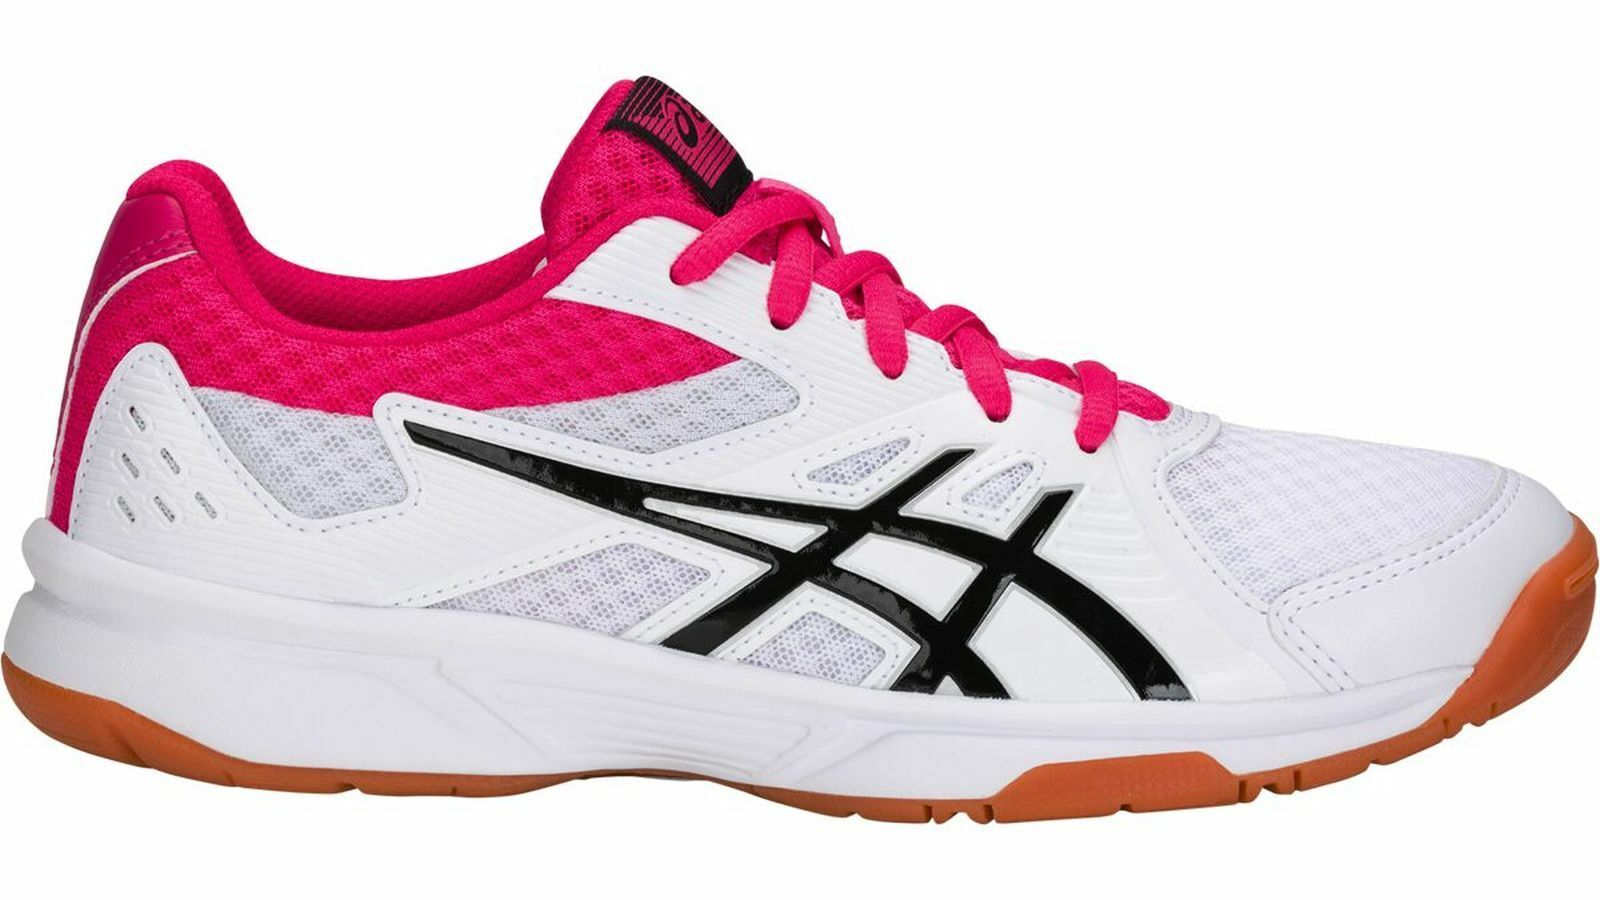 Asics Women's Sports Indoor shoes Upcourt 3 W White Pink